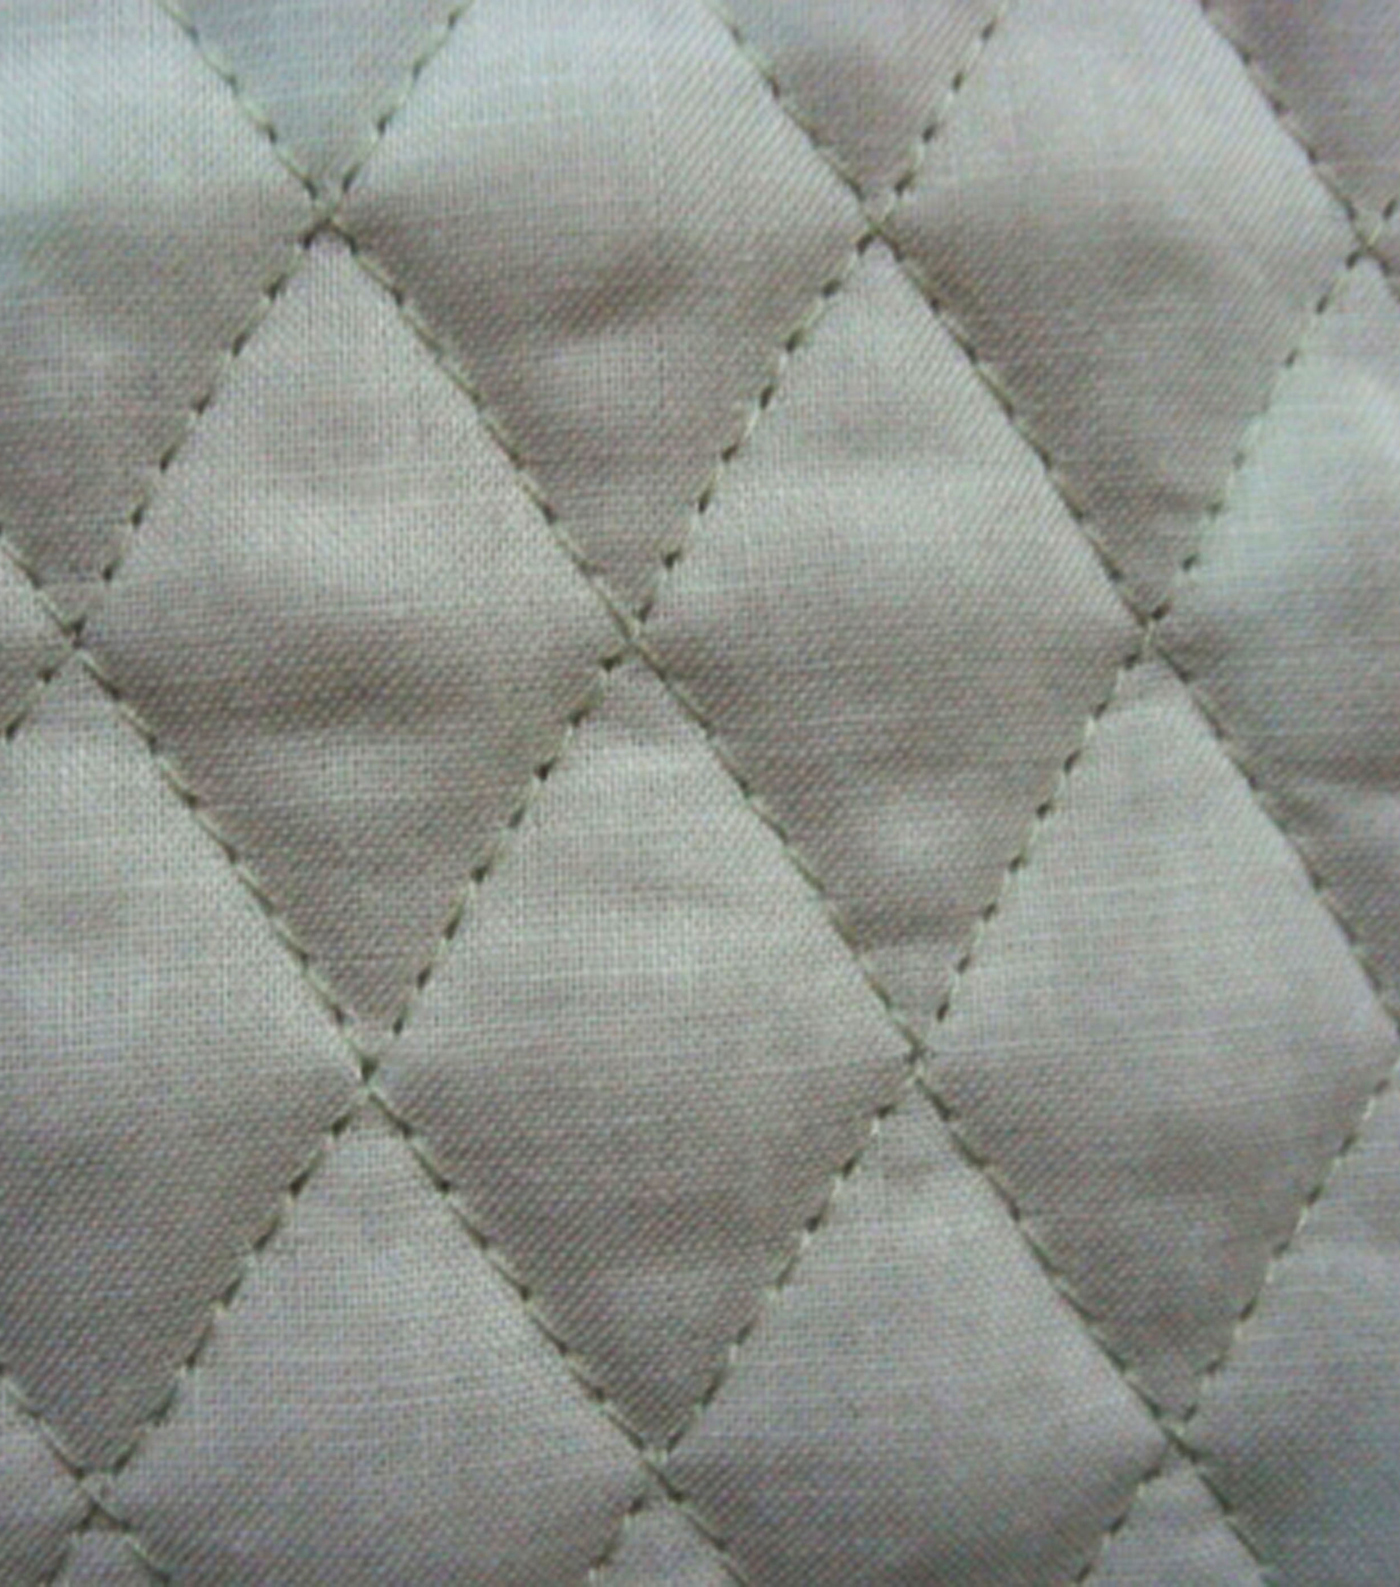 QUILTED FABRIC SATIN PINK Double Side Dress Clothing Material Bedding Upholstery